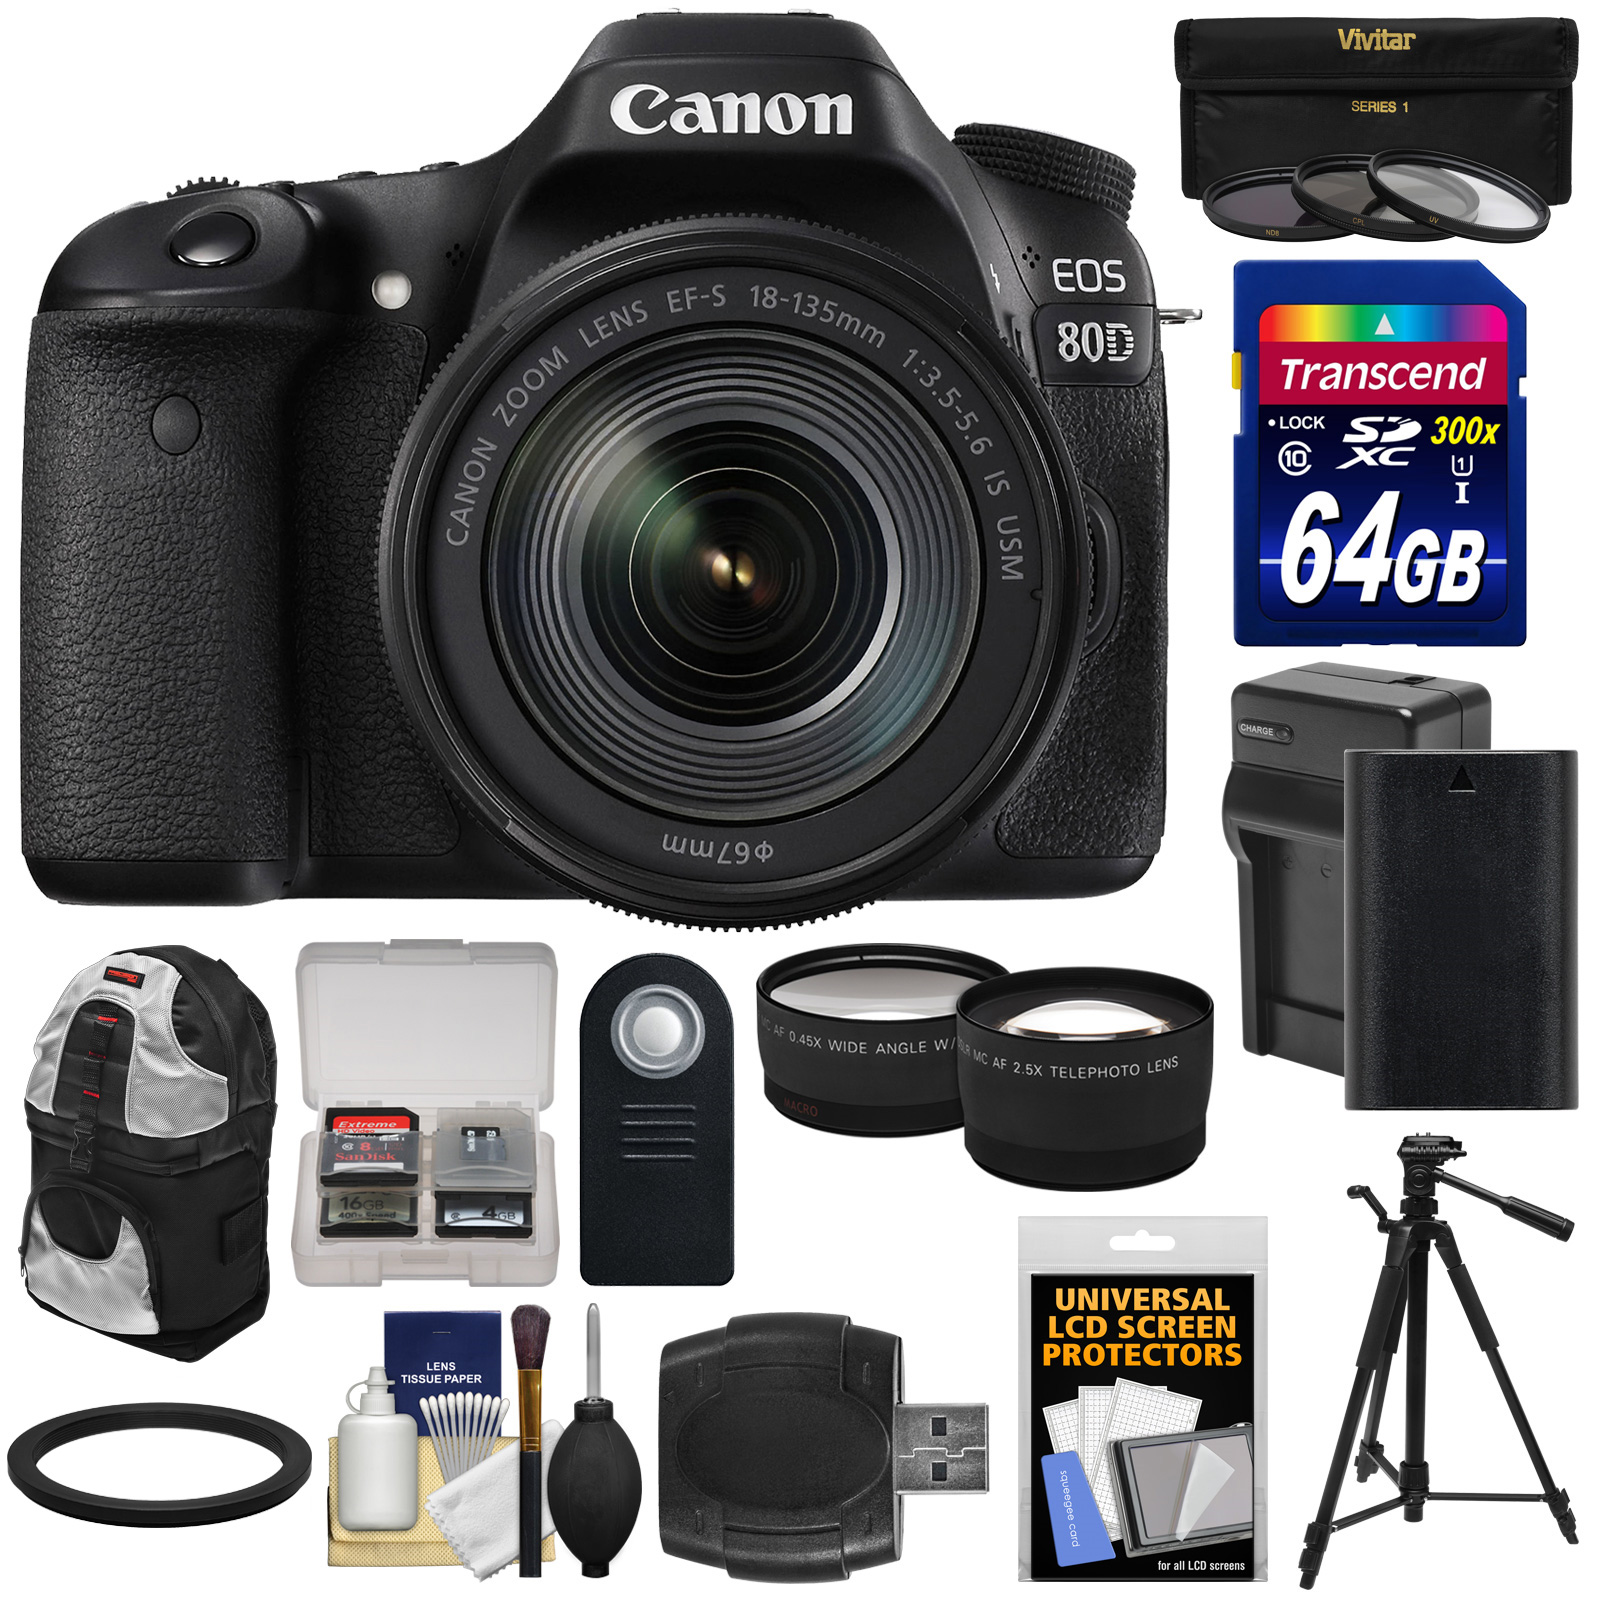 Canon EOS 80D Wi-Fi Digital SLR Camera & 18-135mm IS USM Lens with 64GB Card + Battery & Charger + Backpack + Tripod +... by Canon